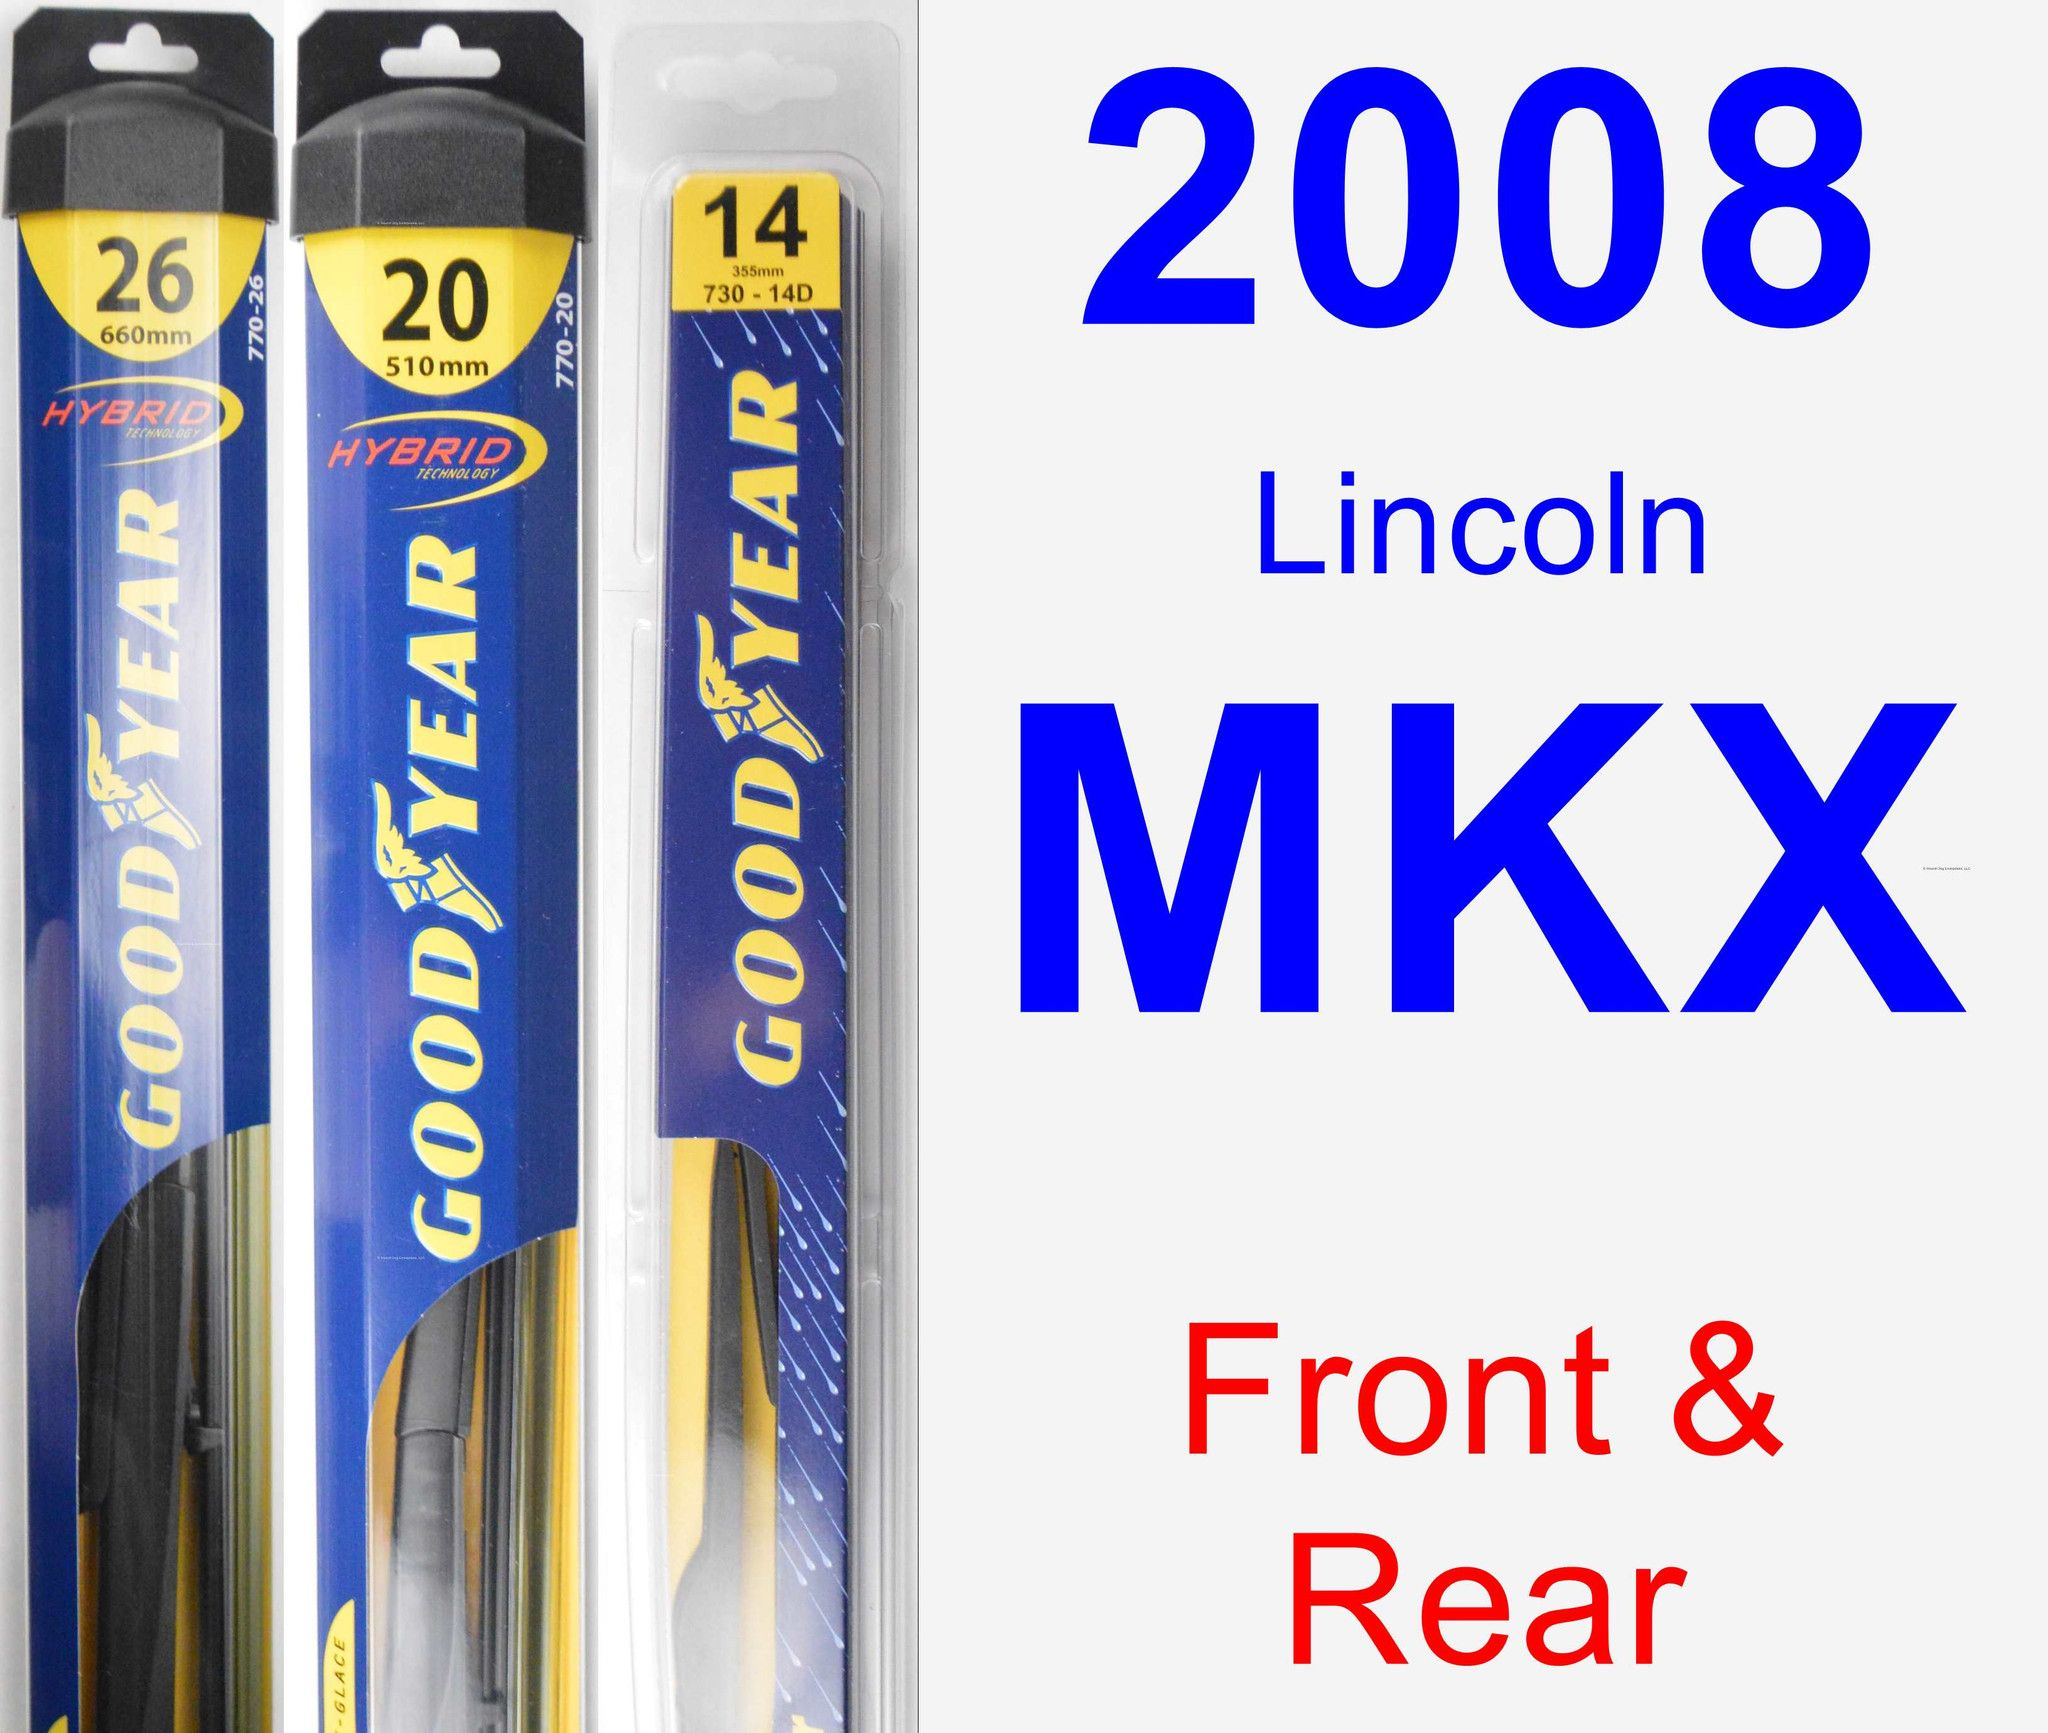 Front & Rear Wiper Blade Pack For 2008 Lincoln MKX